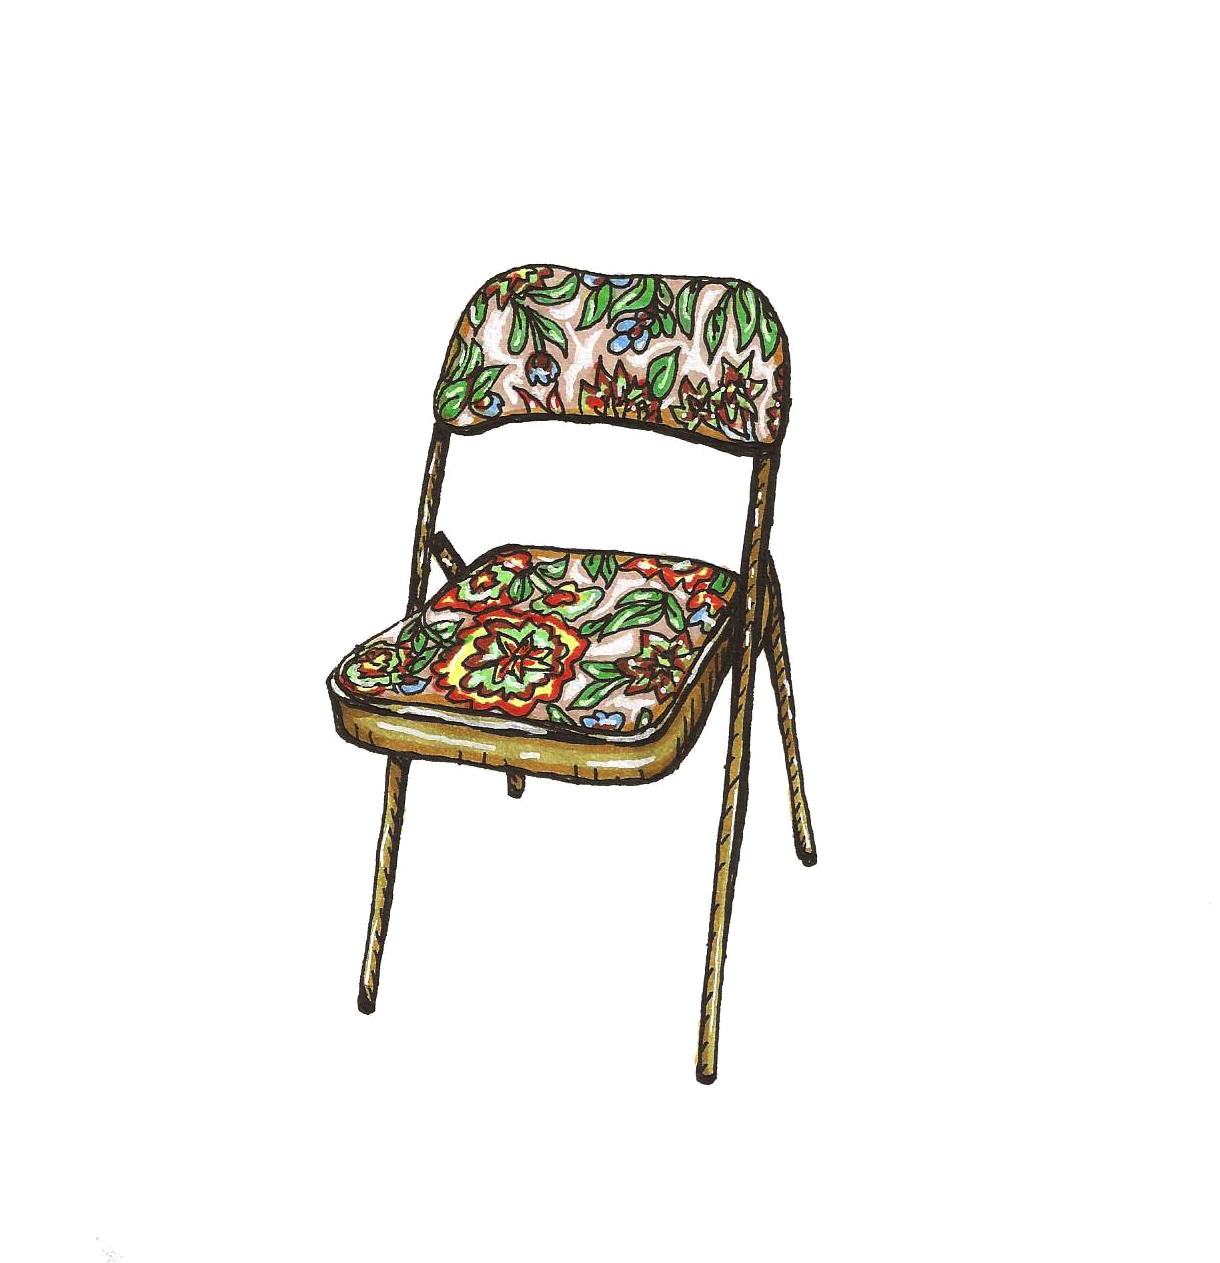 Nana's 1970's Floral Folding Chair